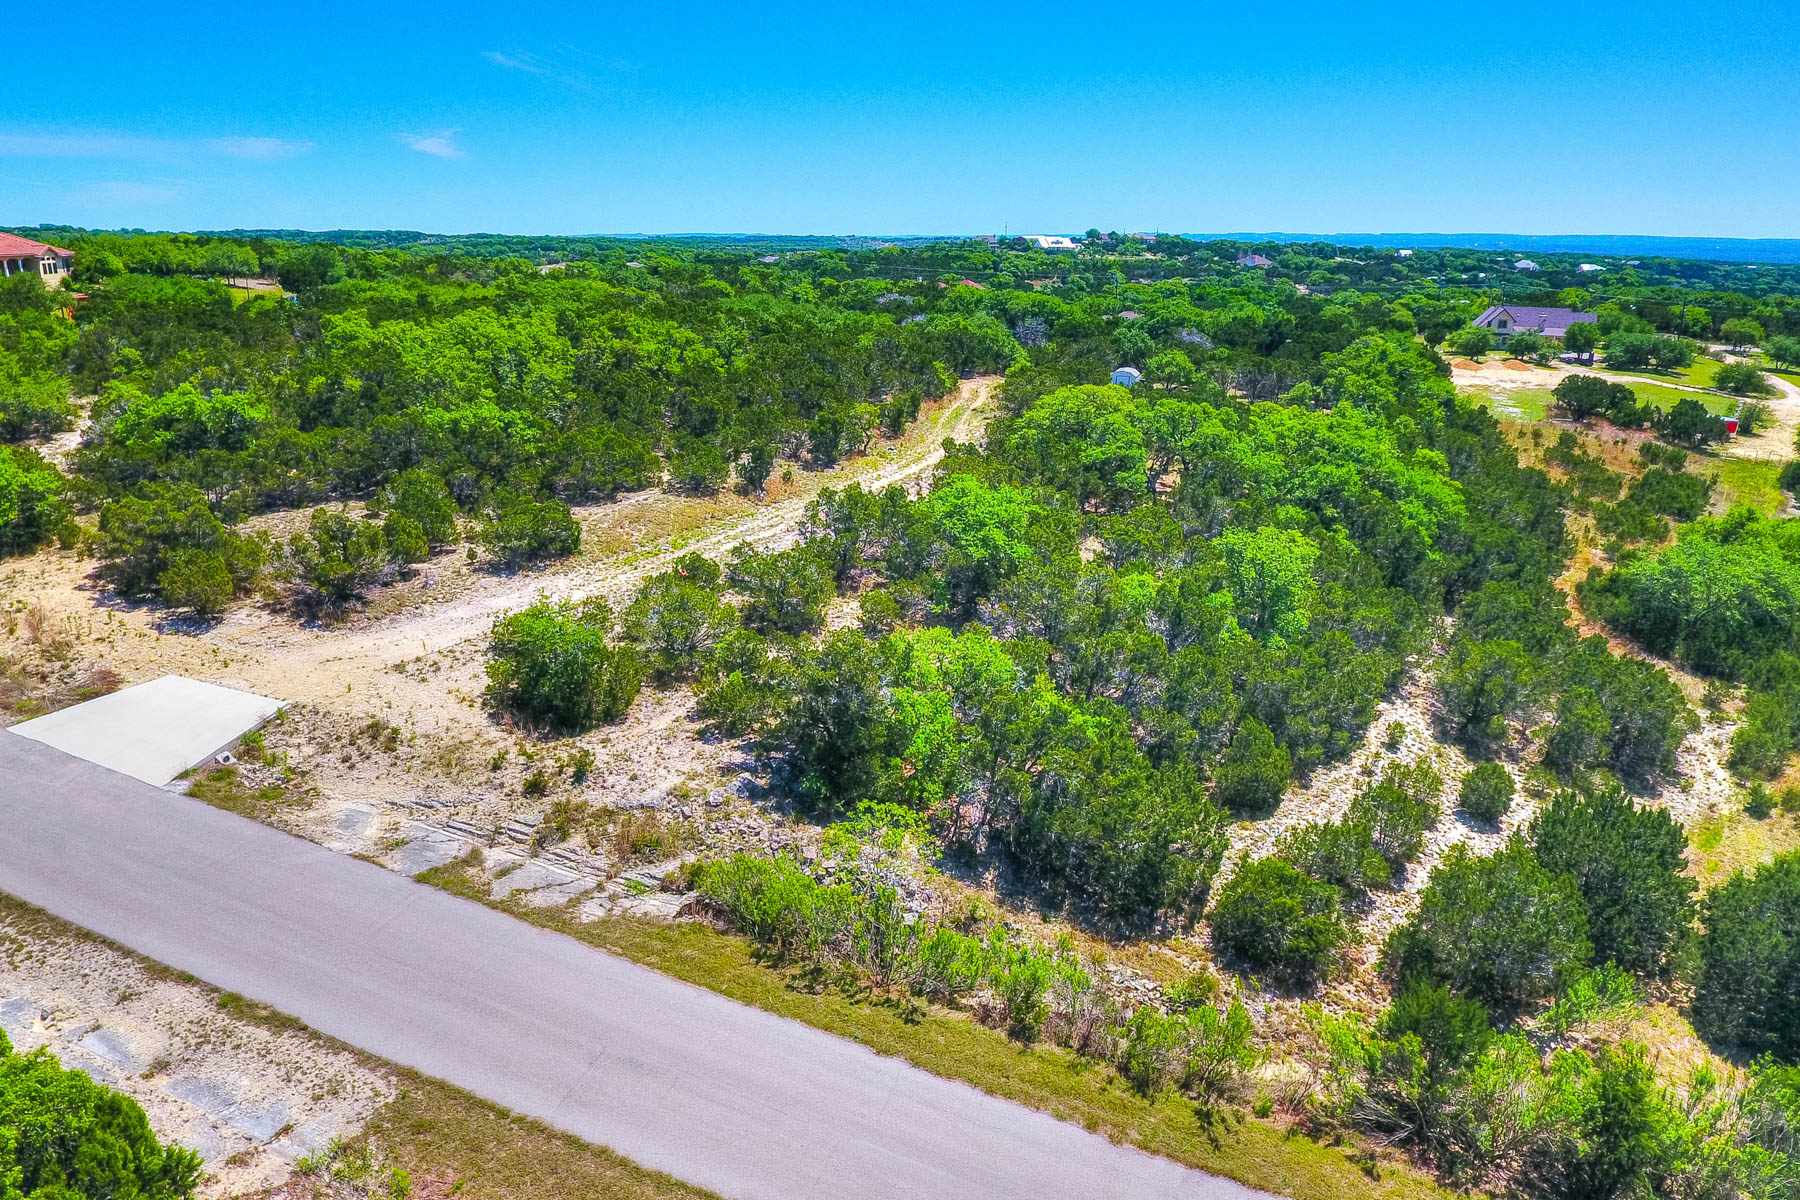 Land for Sale at 3+/- Spacious Acres in Stallion Estates 149 Champion Way Blanco, Texas 78070 United States